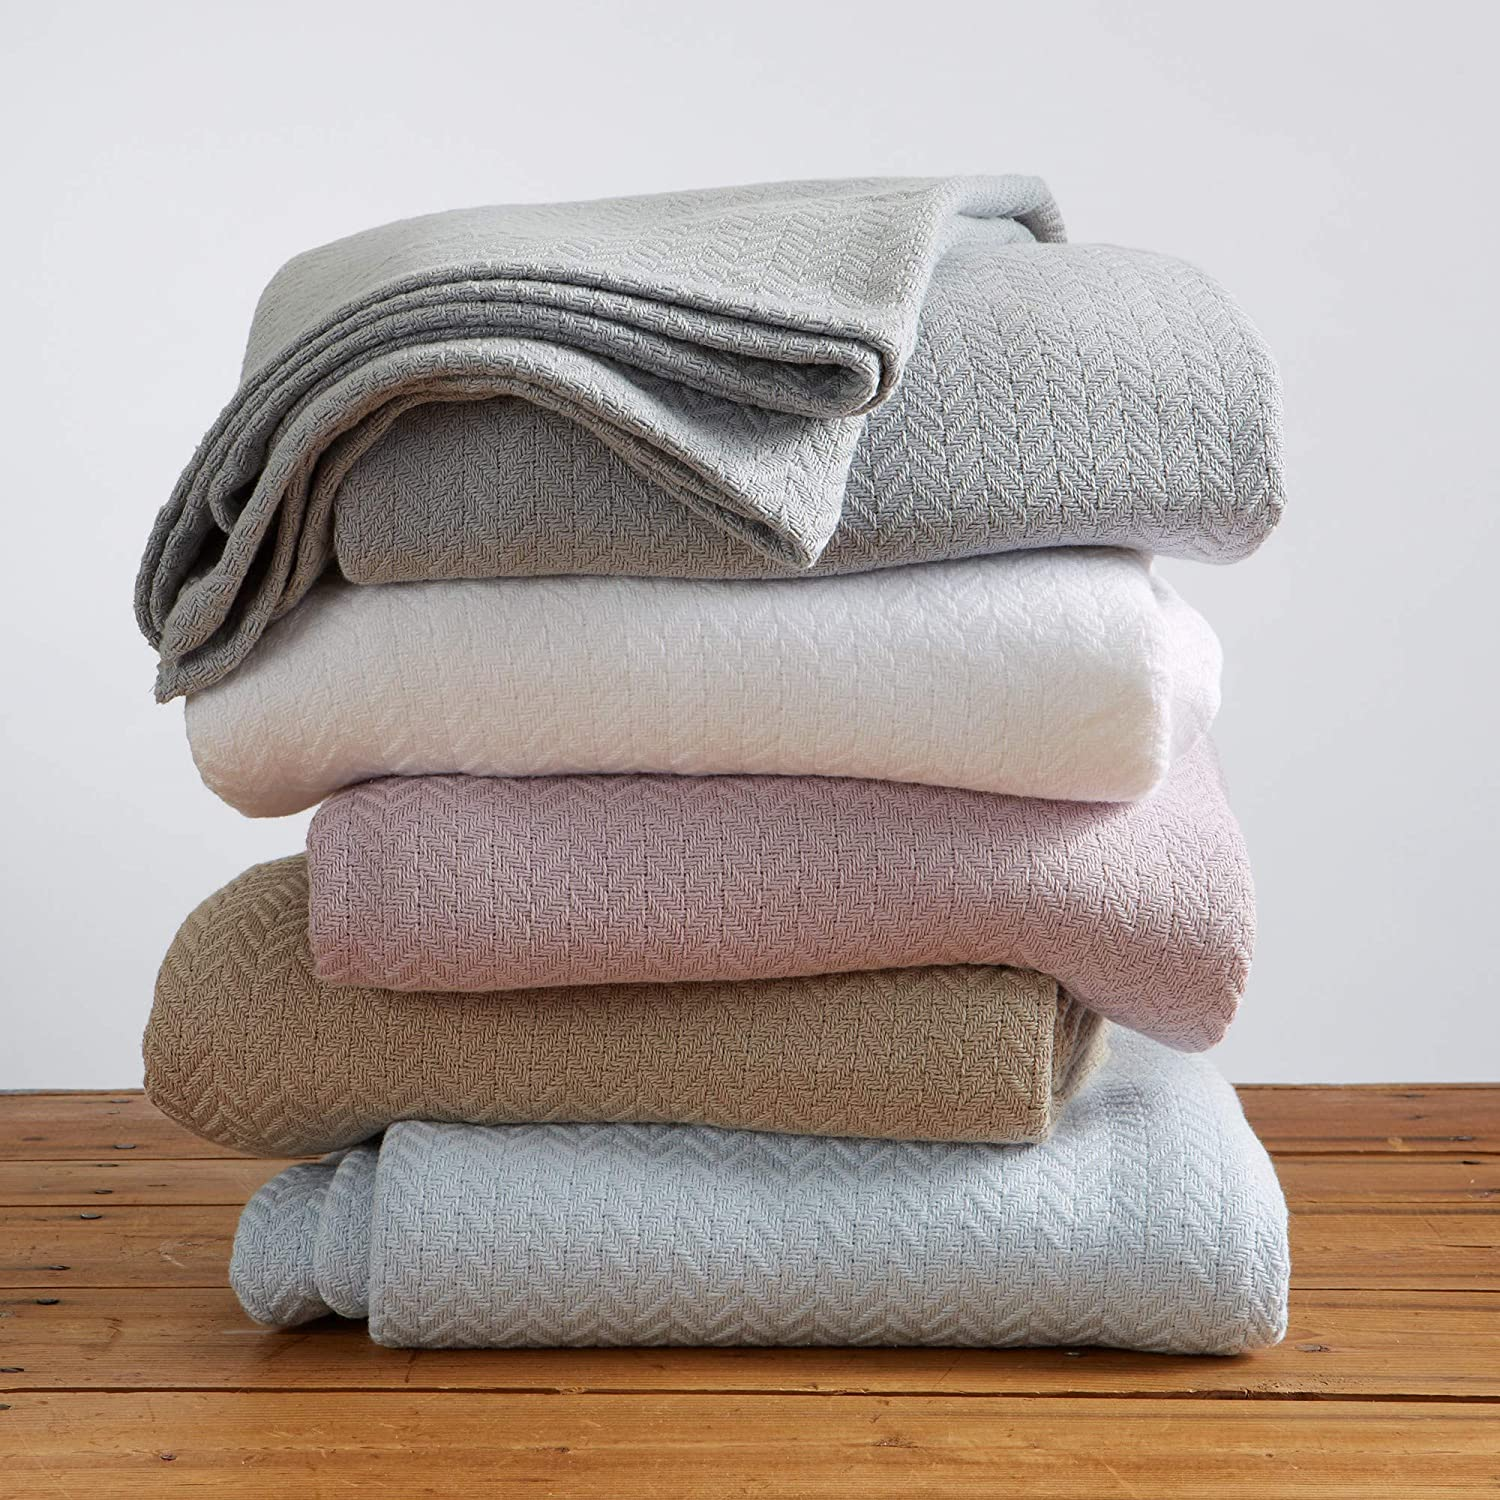 Great Bay Home 100% Ringspun Cotton Textured Weave Blanket. Lightweight and Soft, Perfect for Layering. Aurelie Collection (King, Taupe)